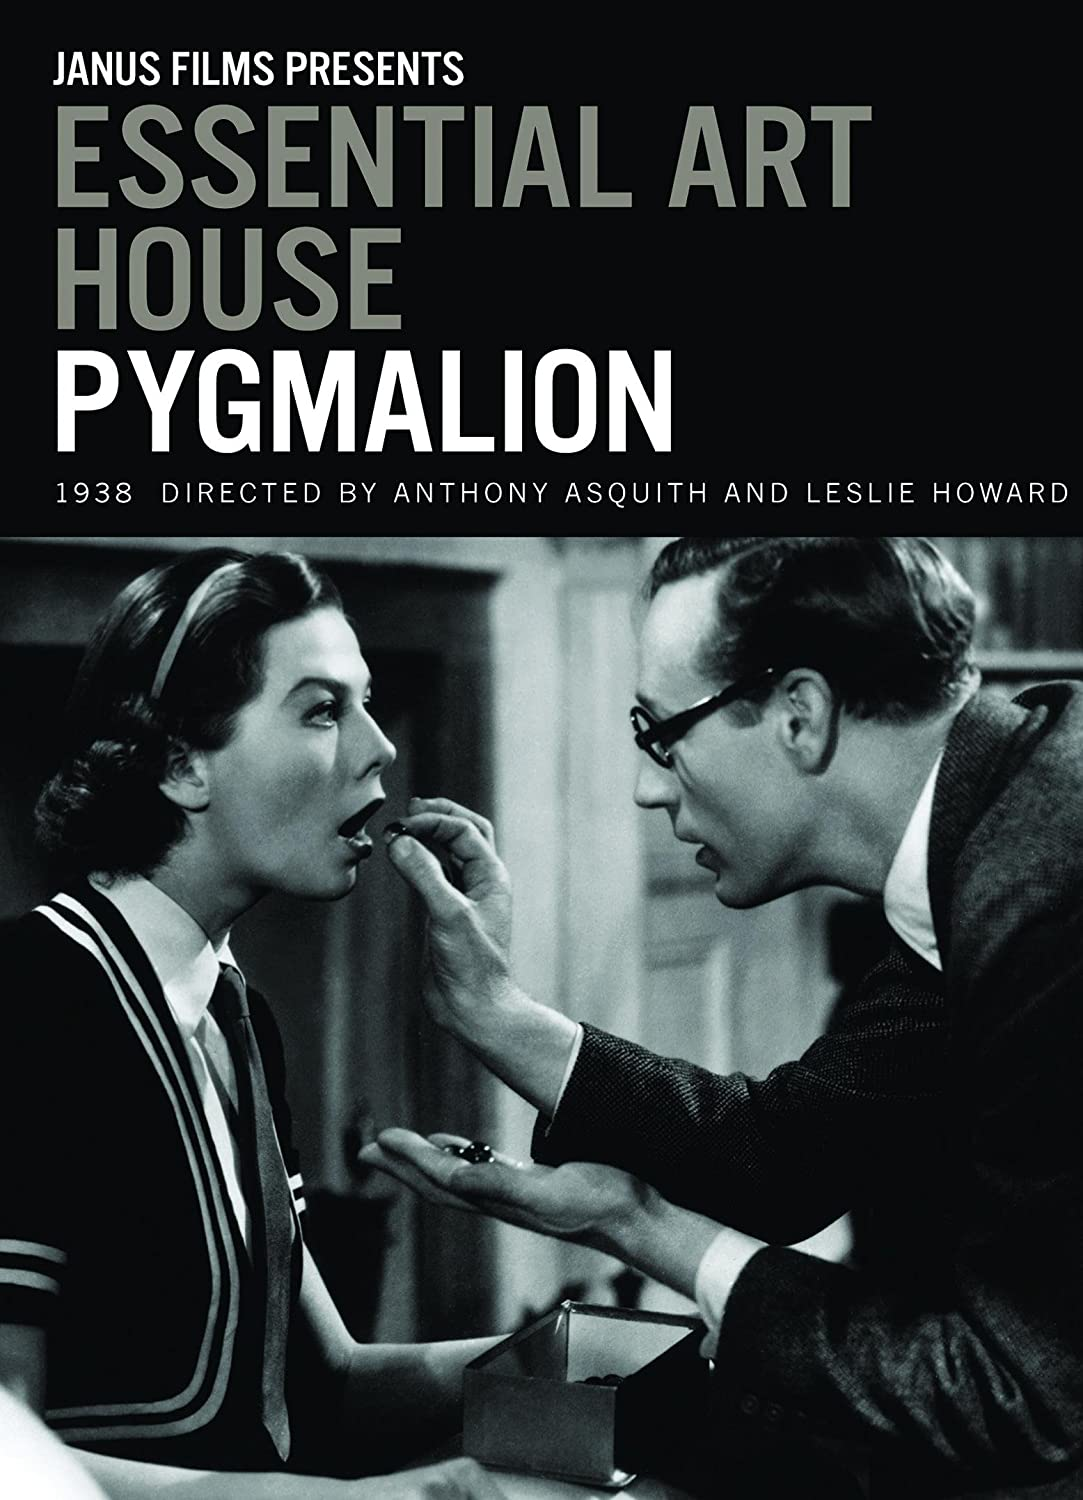 Amazon.com: Pygmalion (1938) - Essential Art House: Wendy Hiller ...